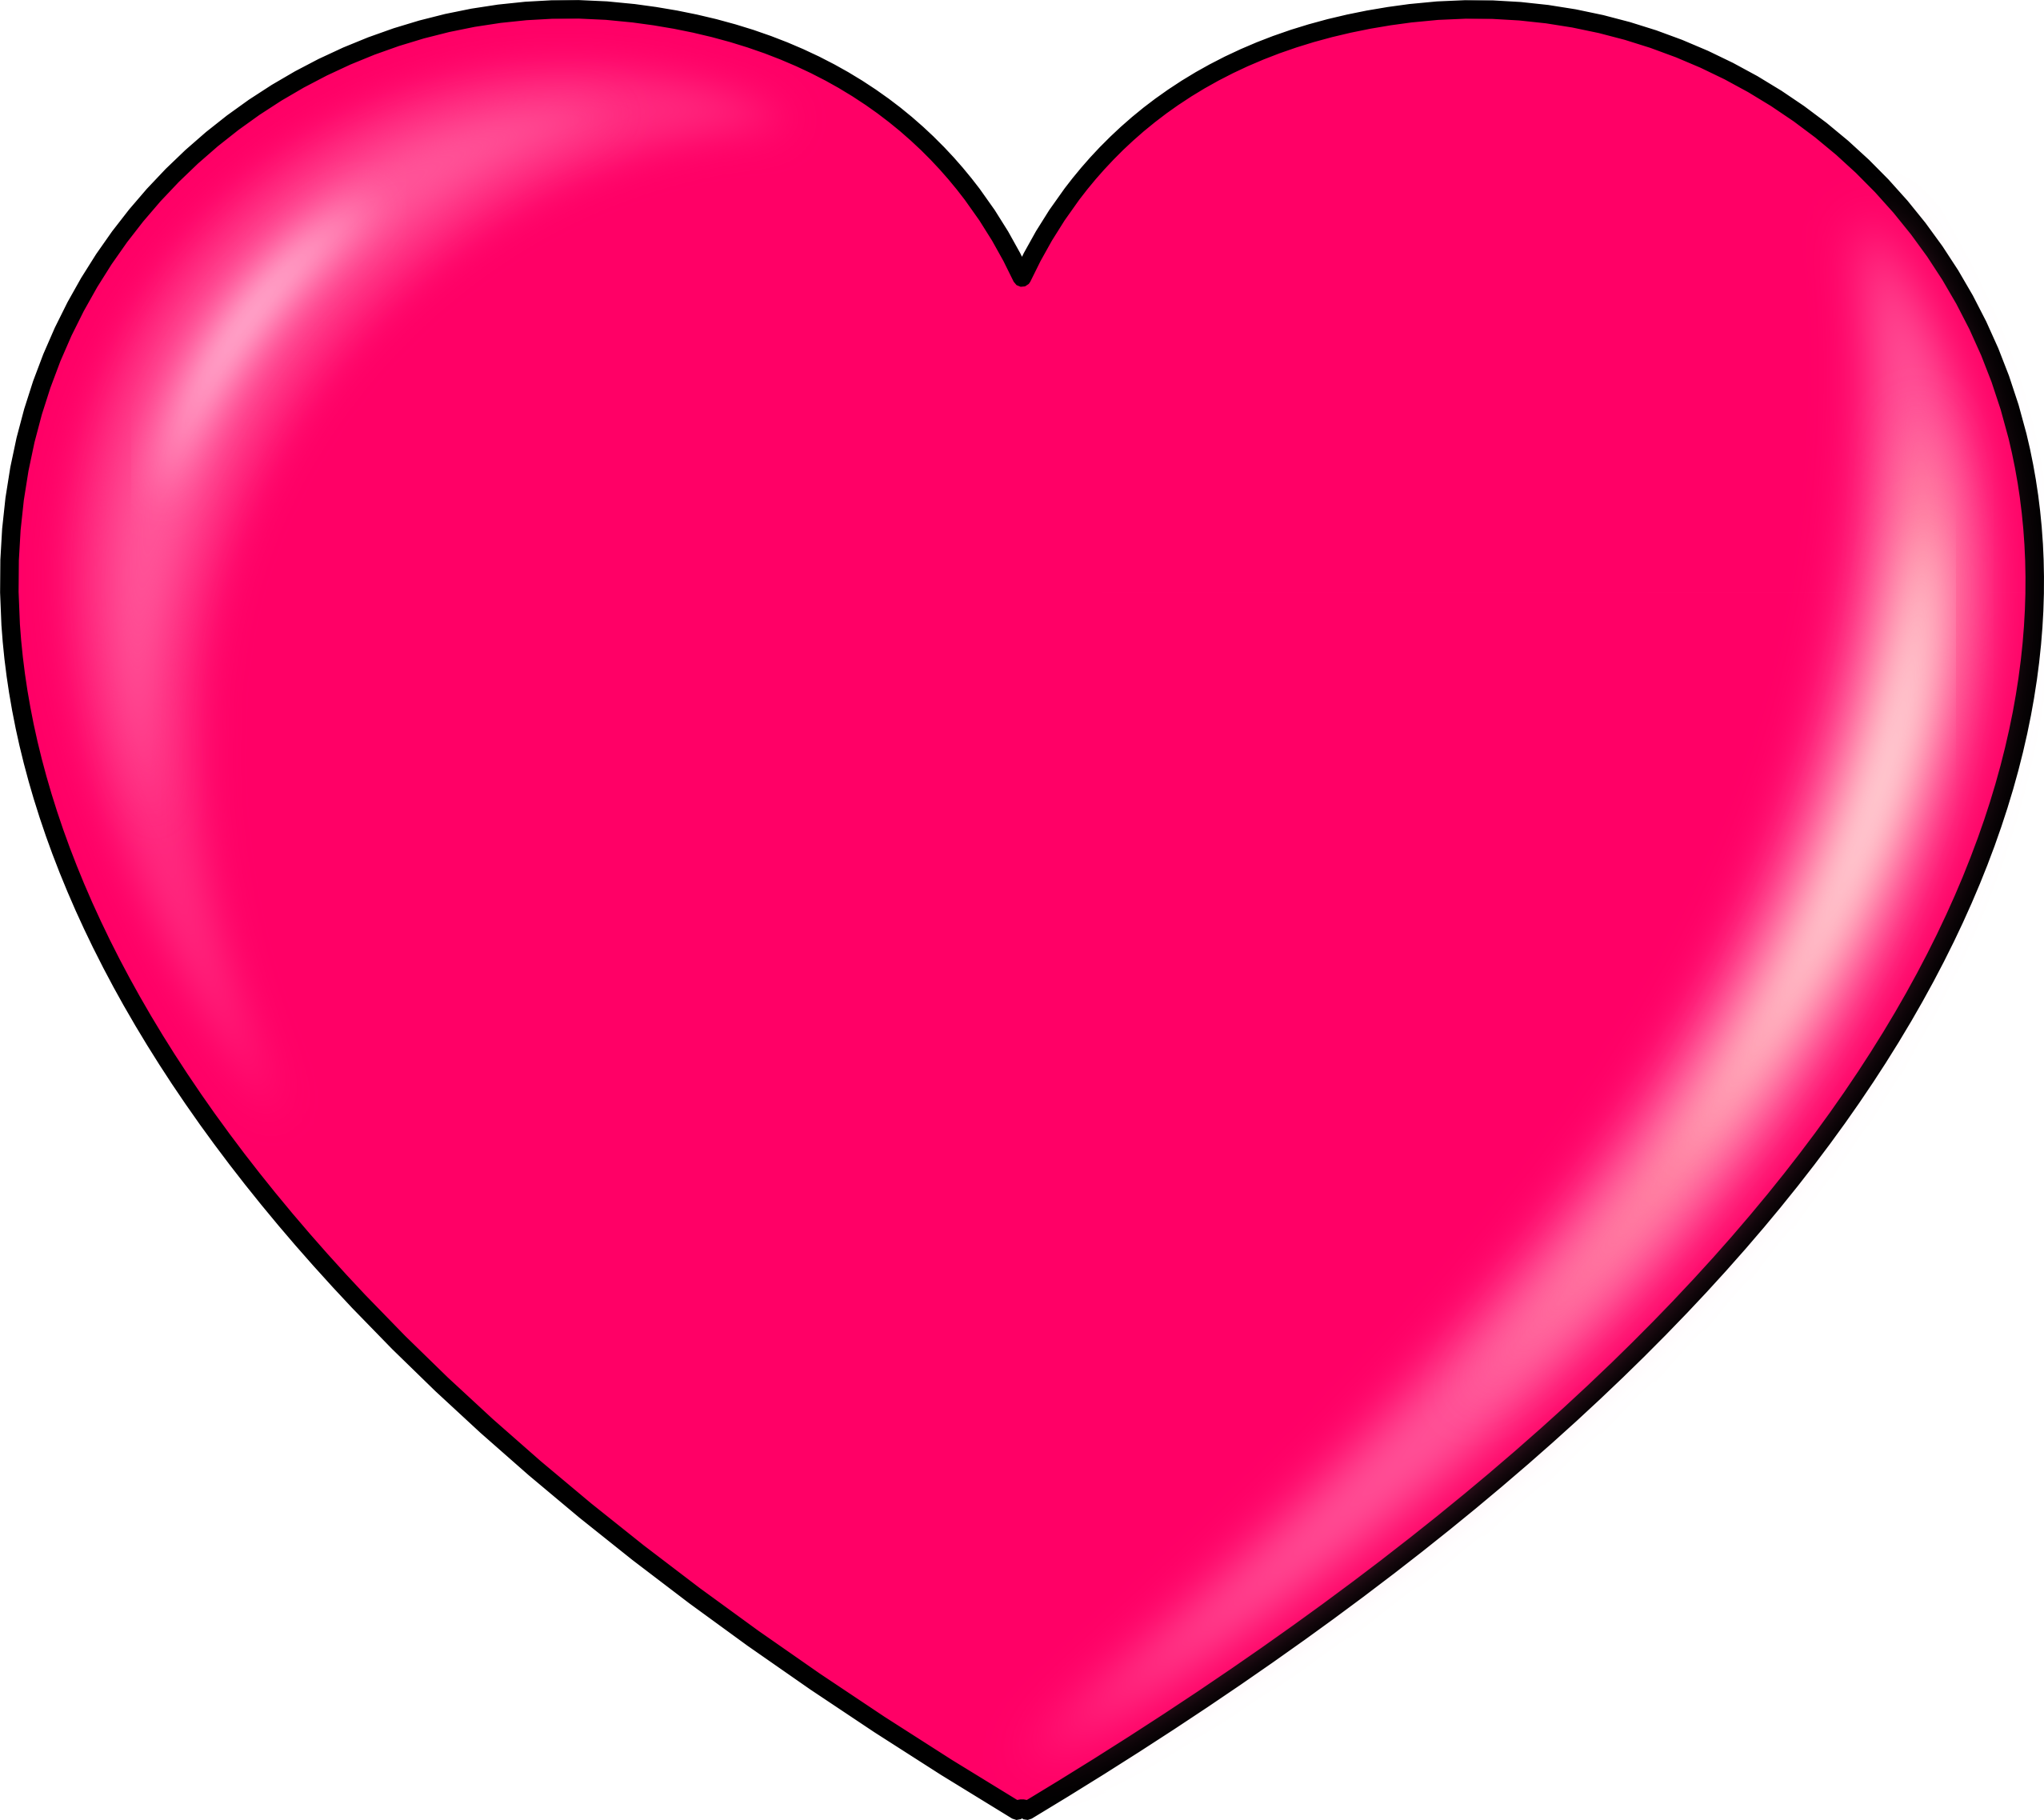 2555x2275 Heart Png Free Images, Download